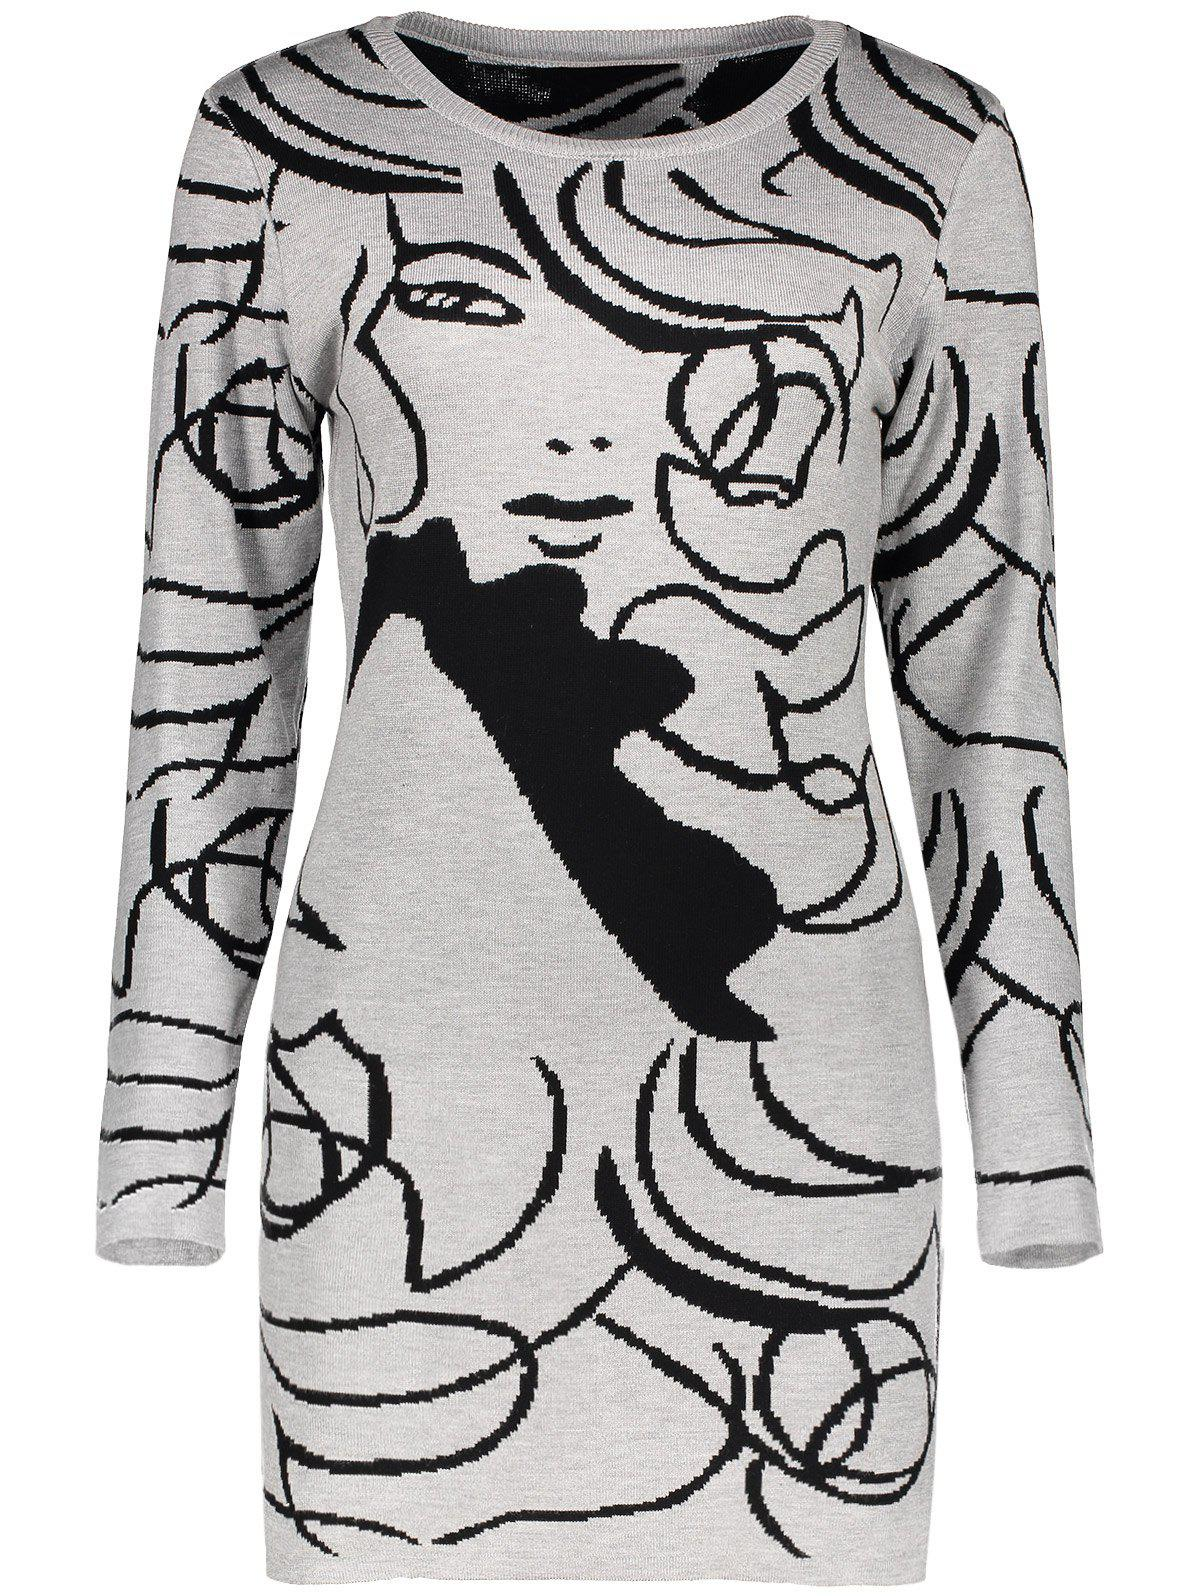 Long Sleeve Graphic Knit Mini DressWomen<br><br><br>Size: ONE SIZE<br>Color: GRAY